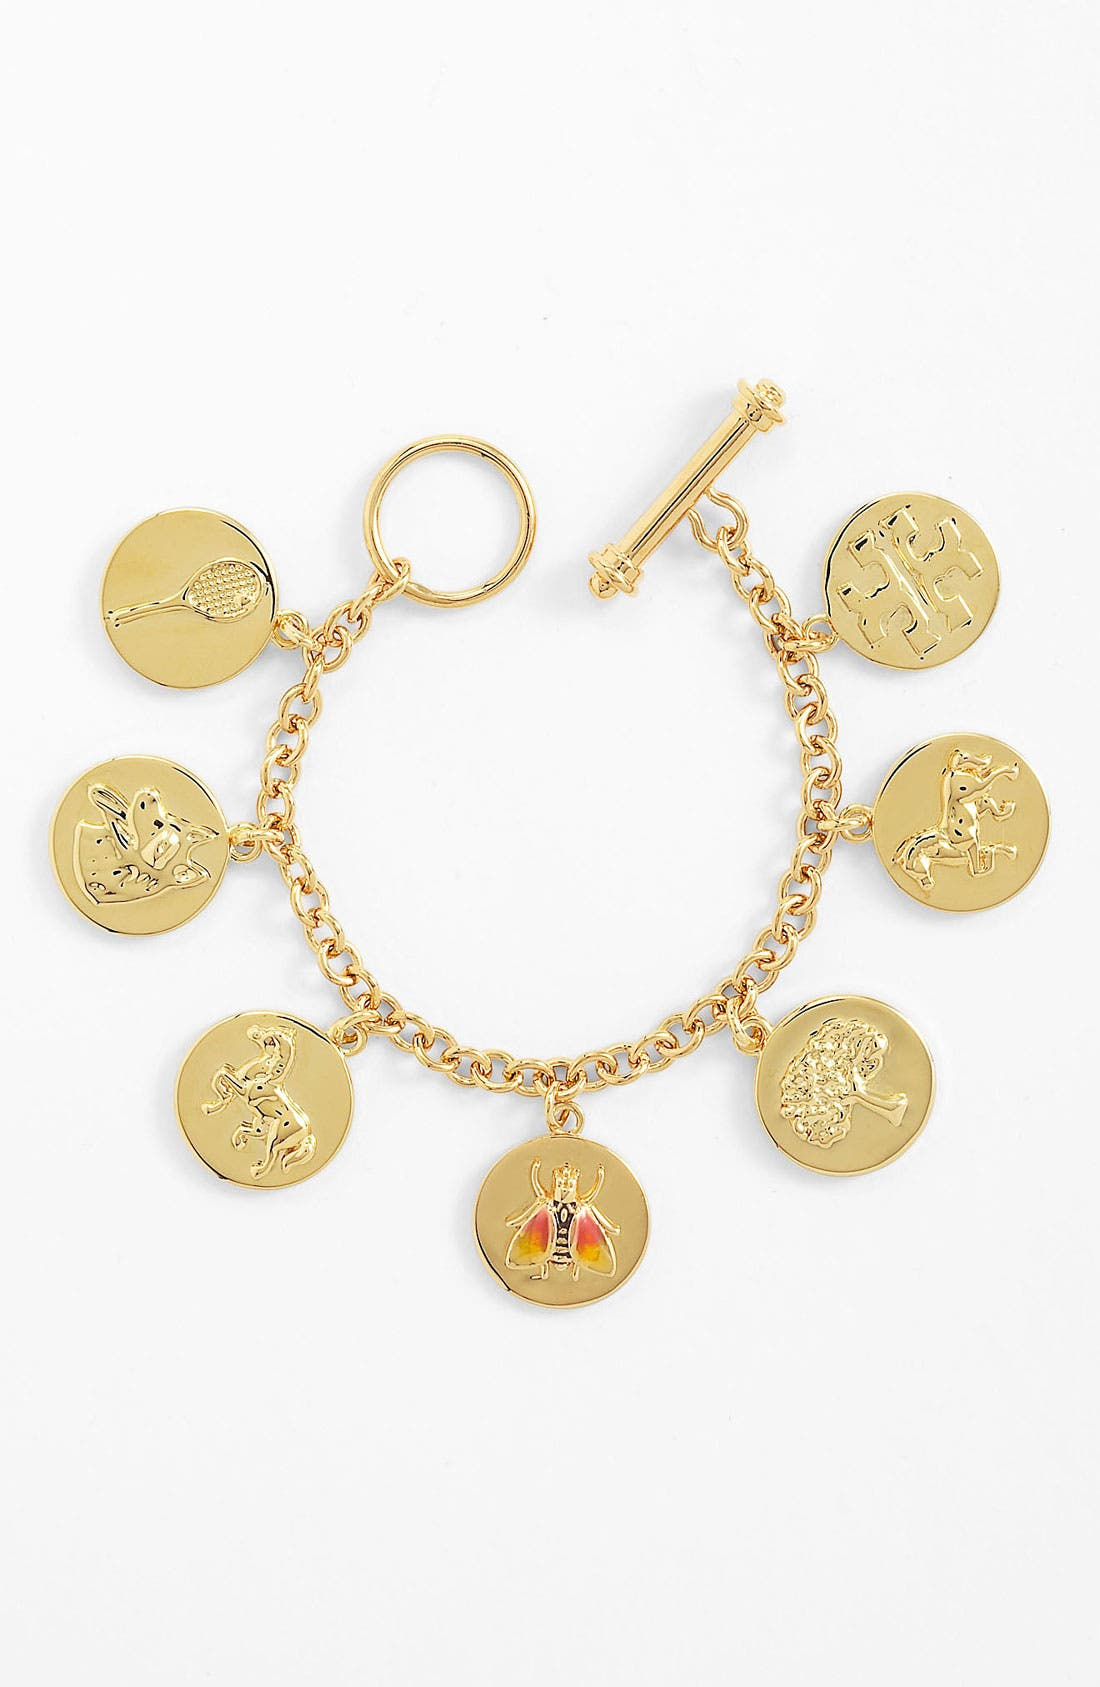 Alternate Image 1 Selected - Tory Burch 'Buddy' Charm Bracelet